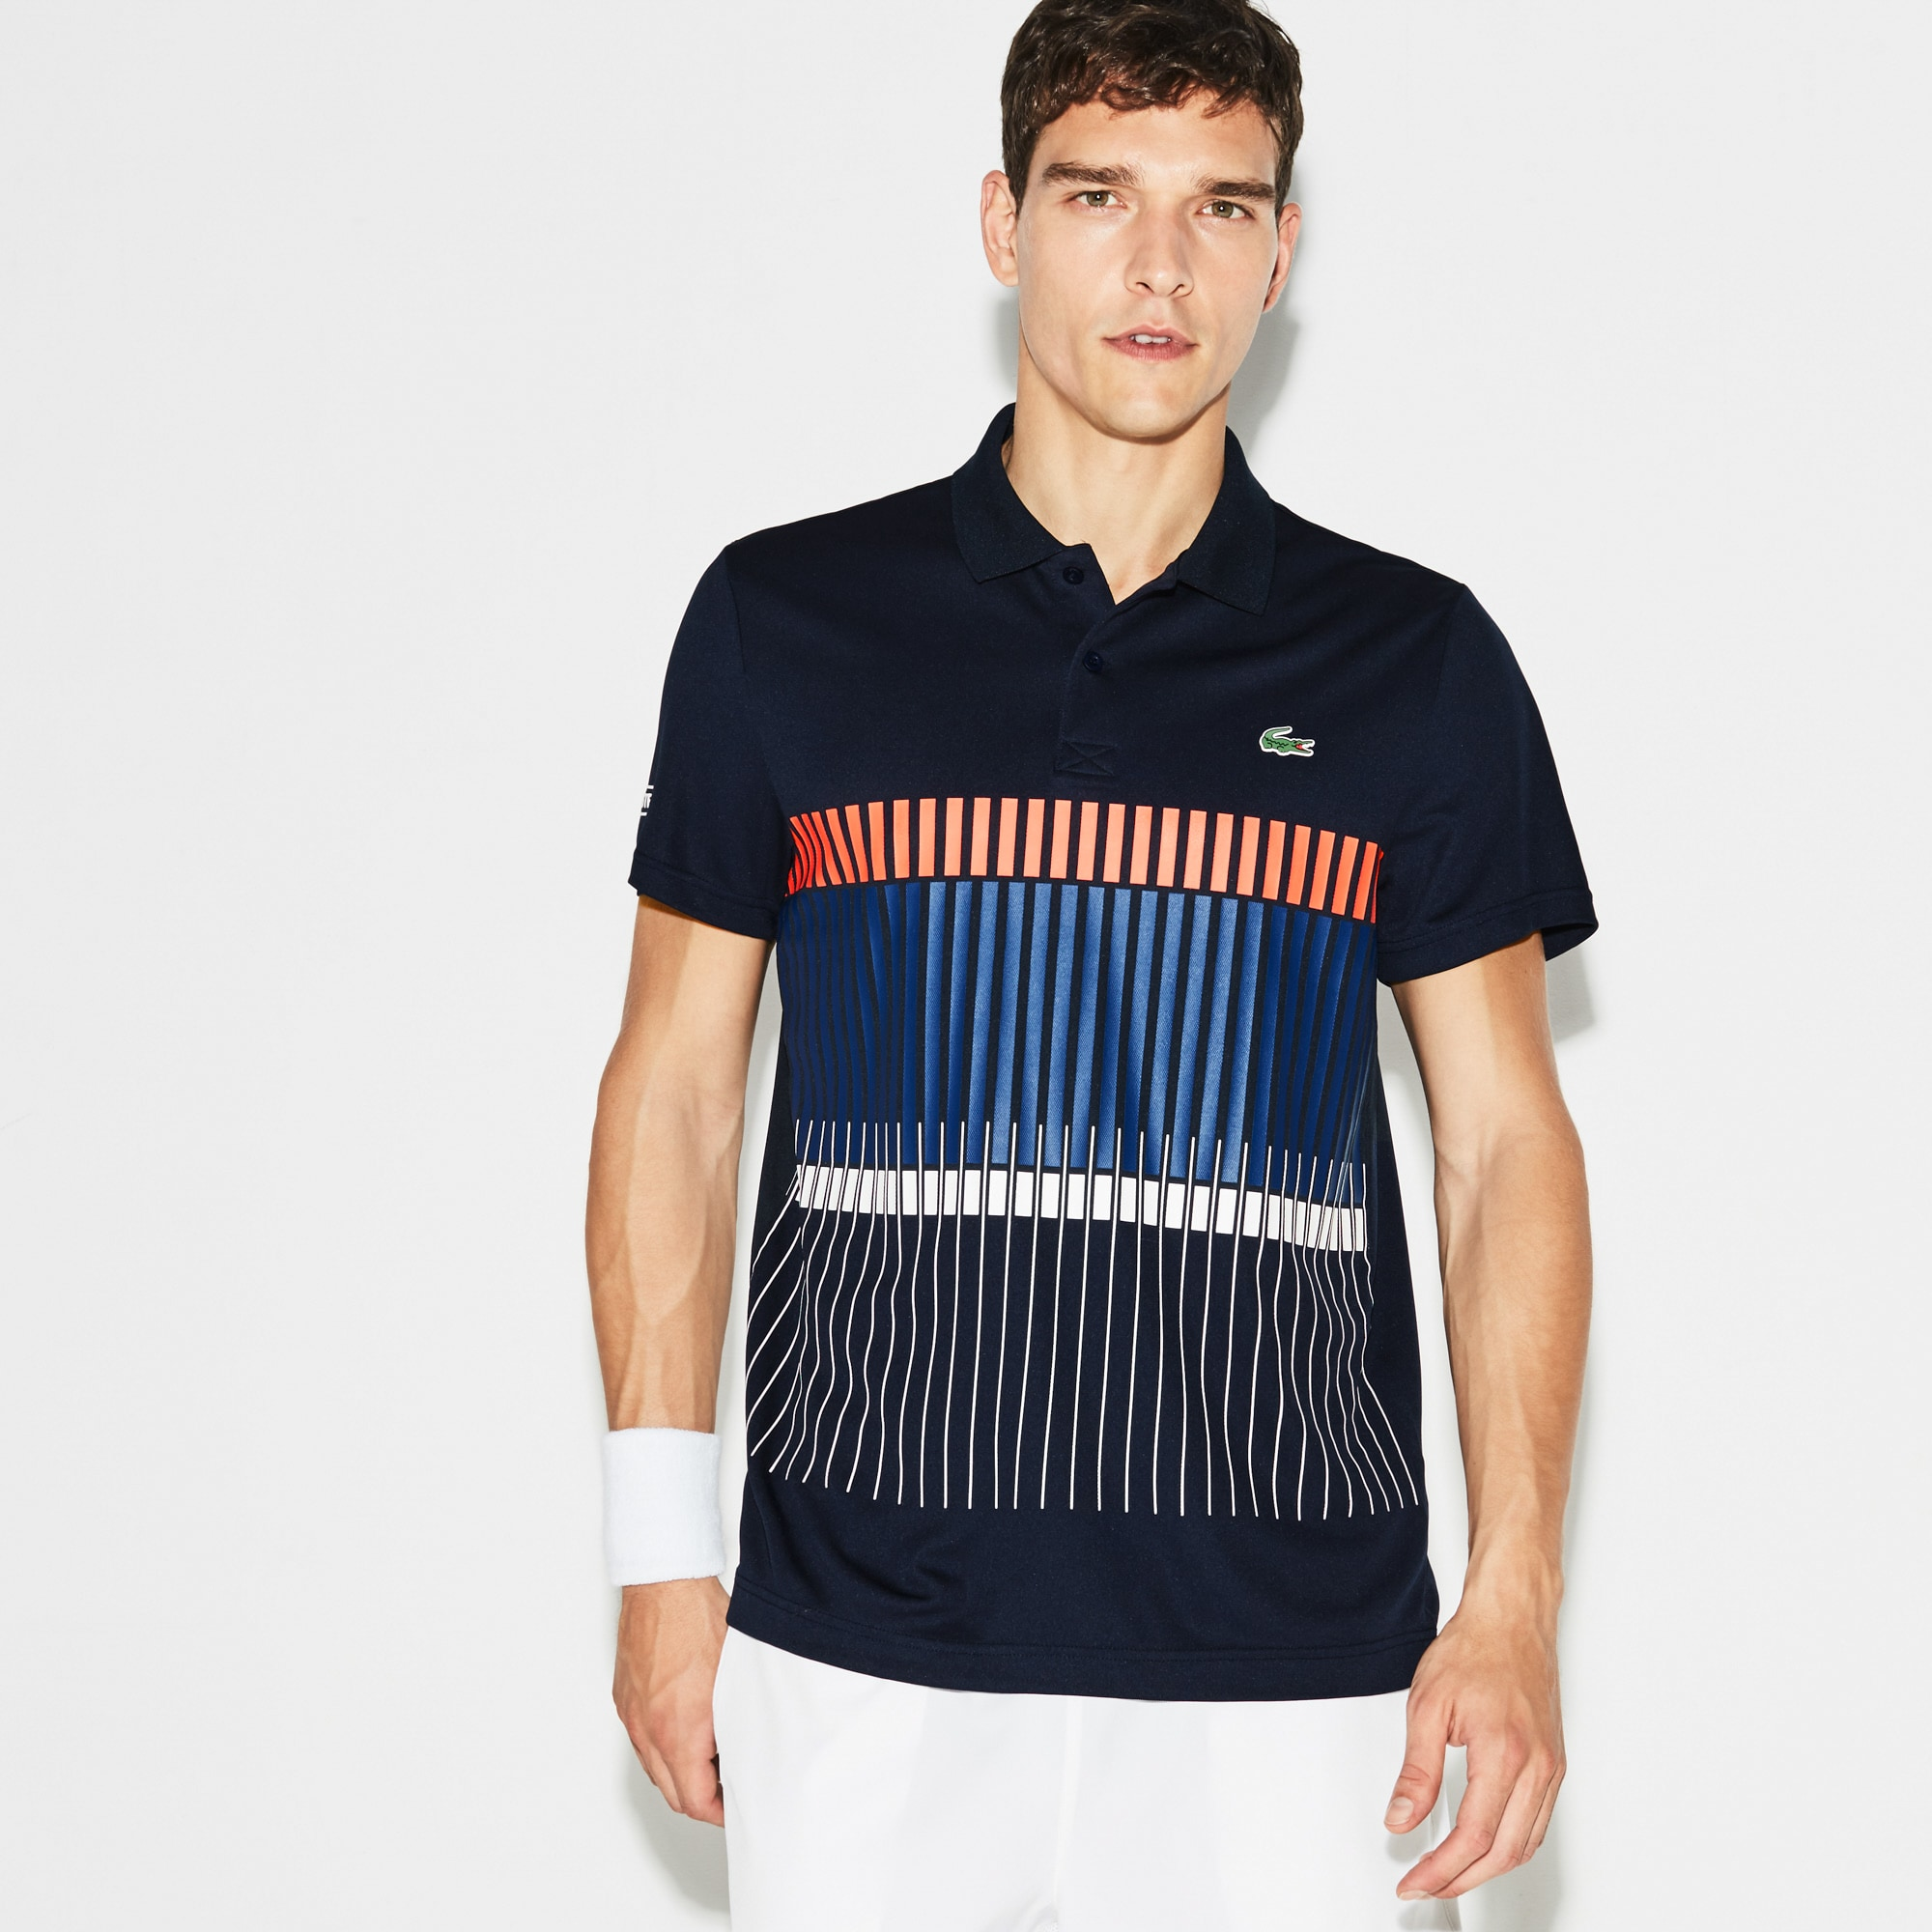 Lacoste Polo Kollektion für Novak Djokovic - Exclusive Clay Edition